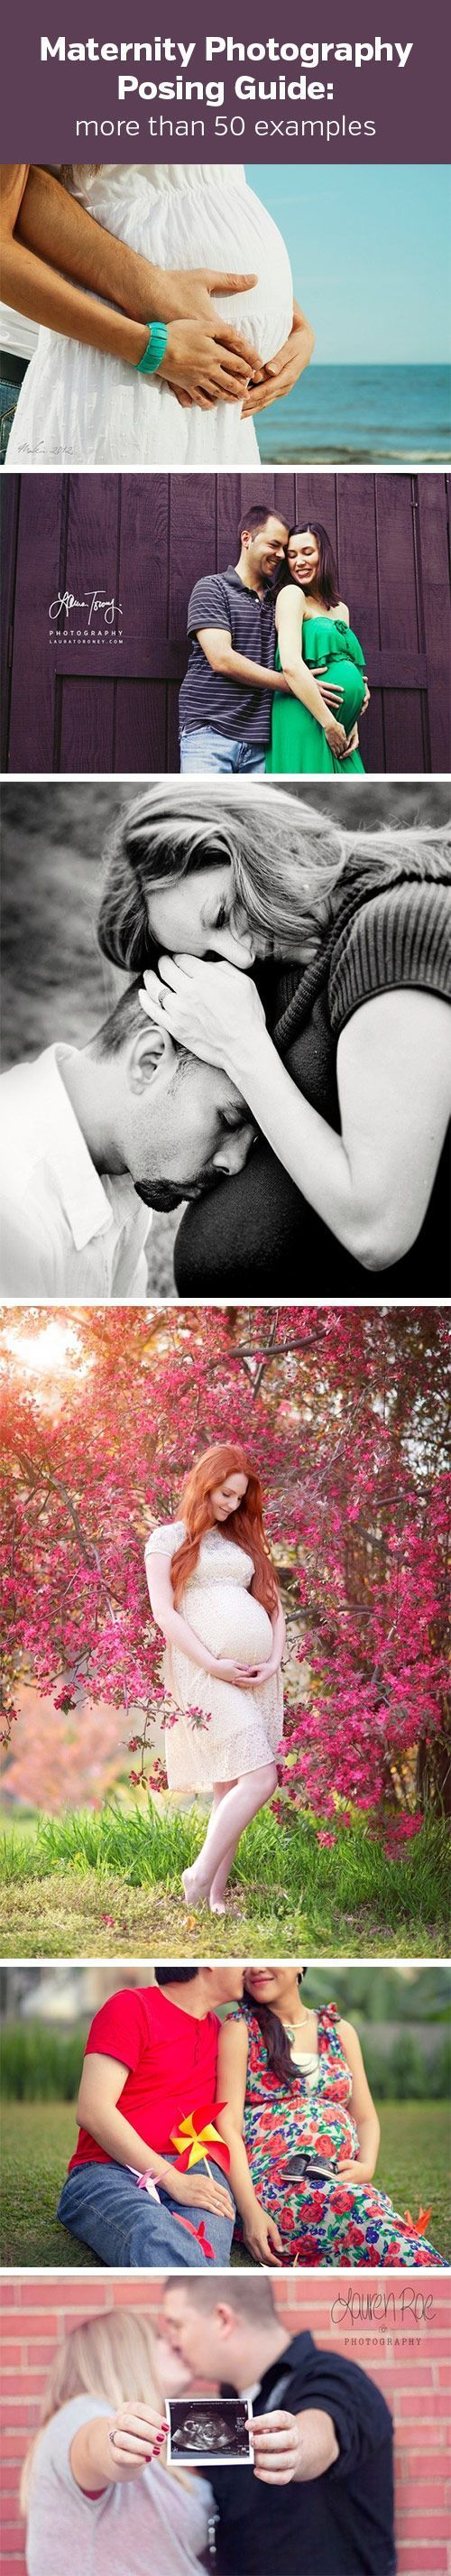 Maternity Photography Posing Guide - shows how to use more than 50 different poses for beautiful maternity photos